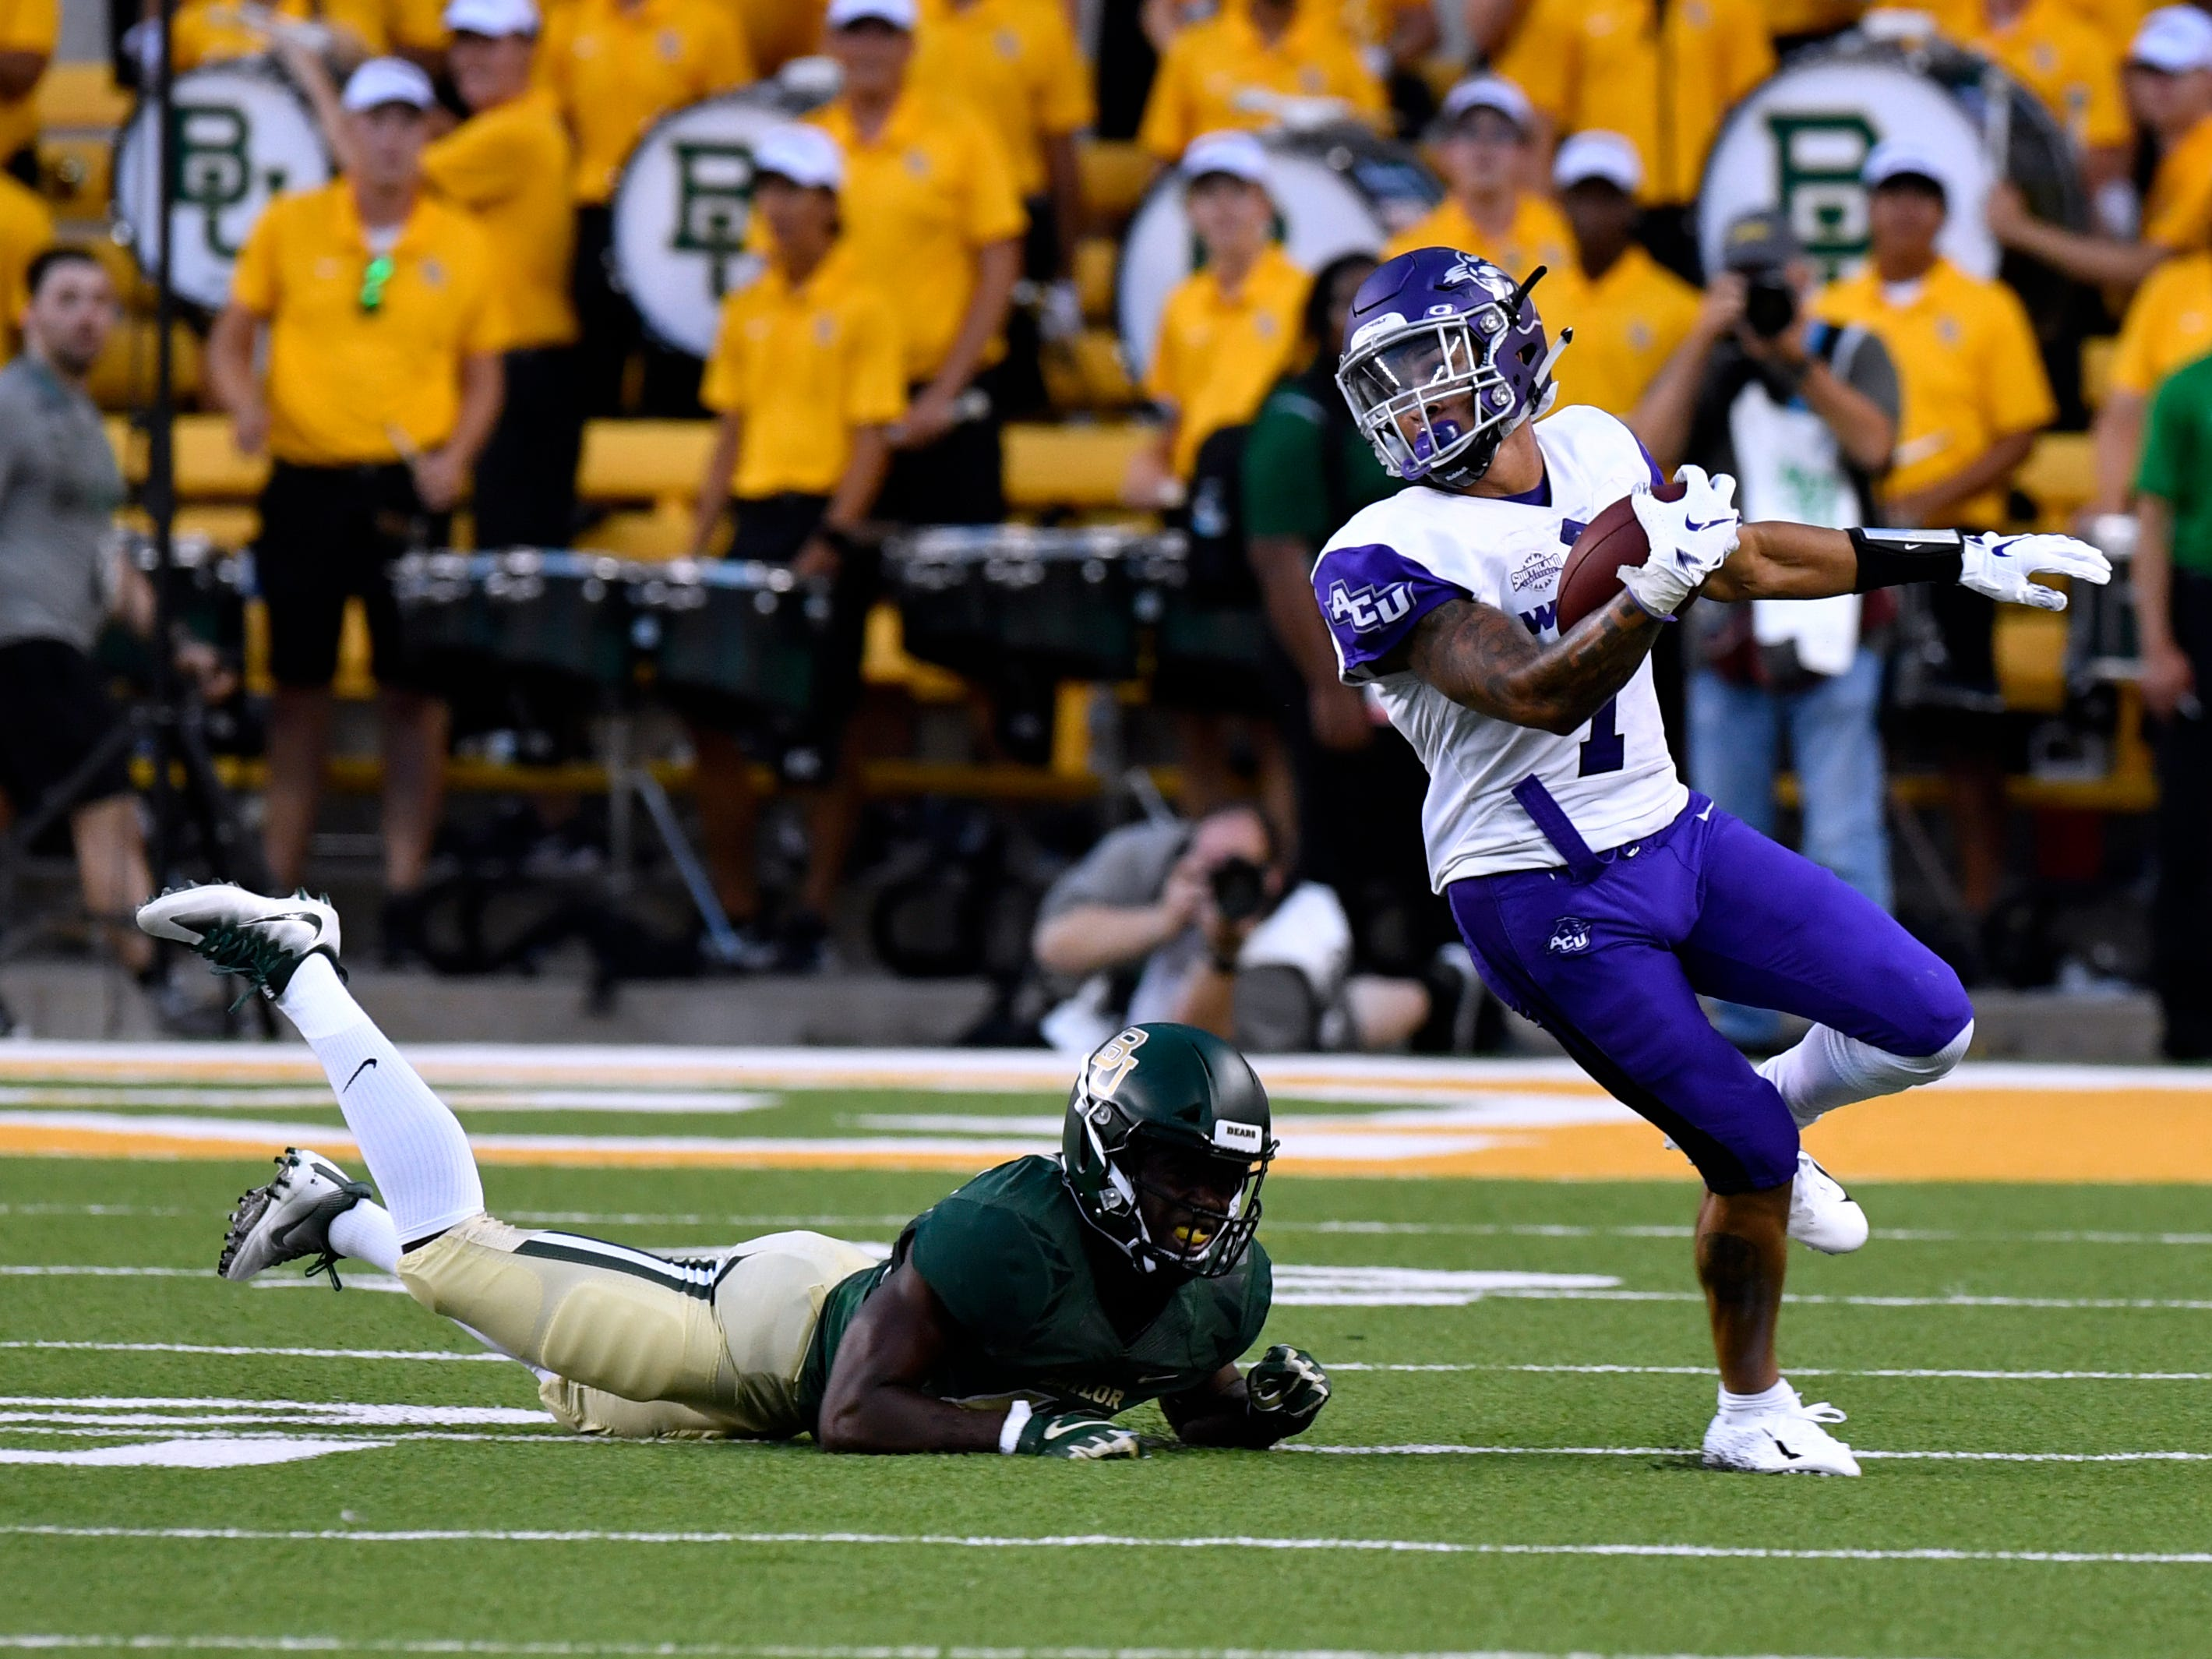 ACU wide receiver D.J. Fuller escapes a tackle during Saturday's game against Baylor in Waco Sept. 1, 2018.